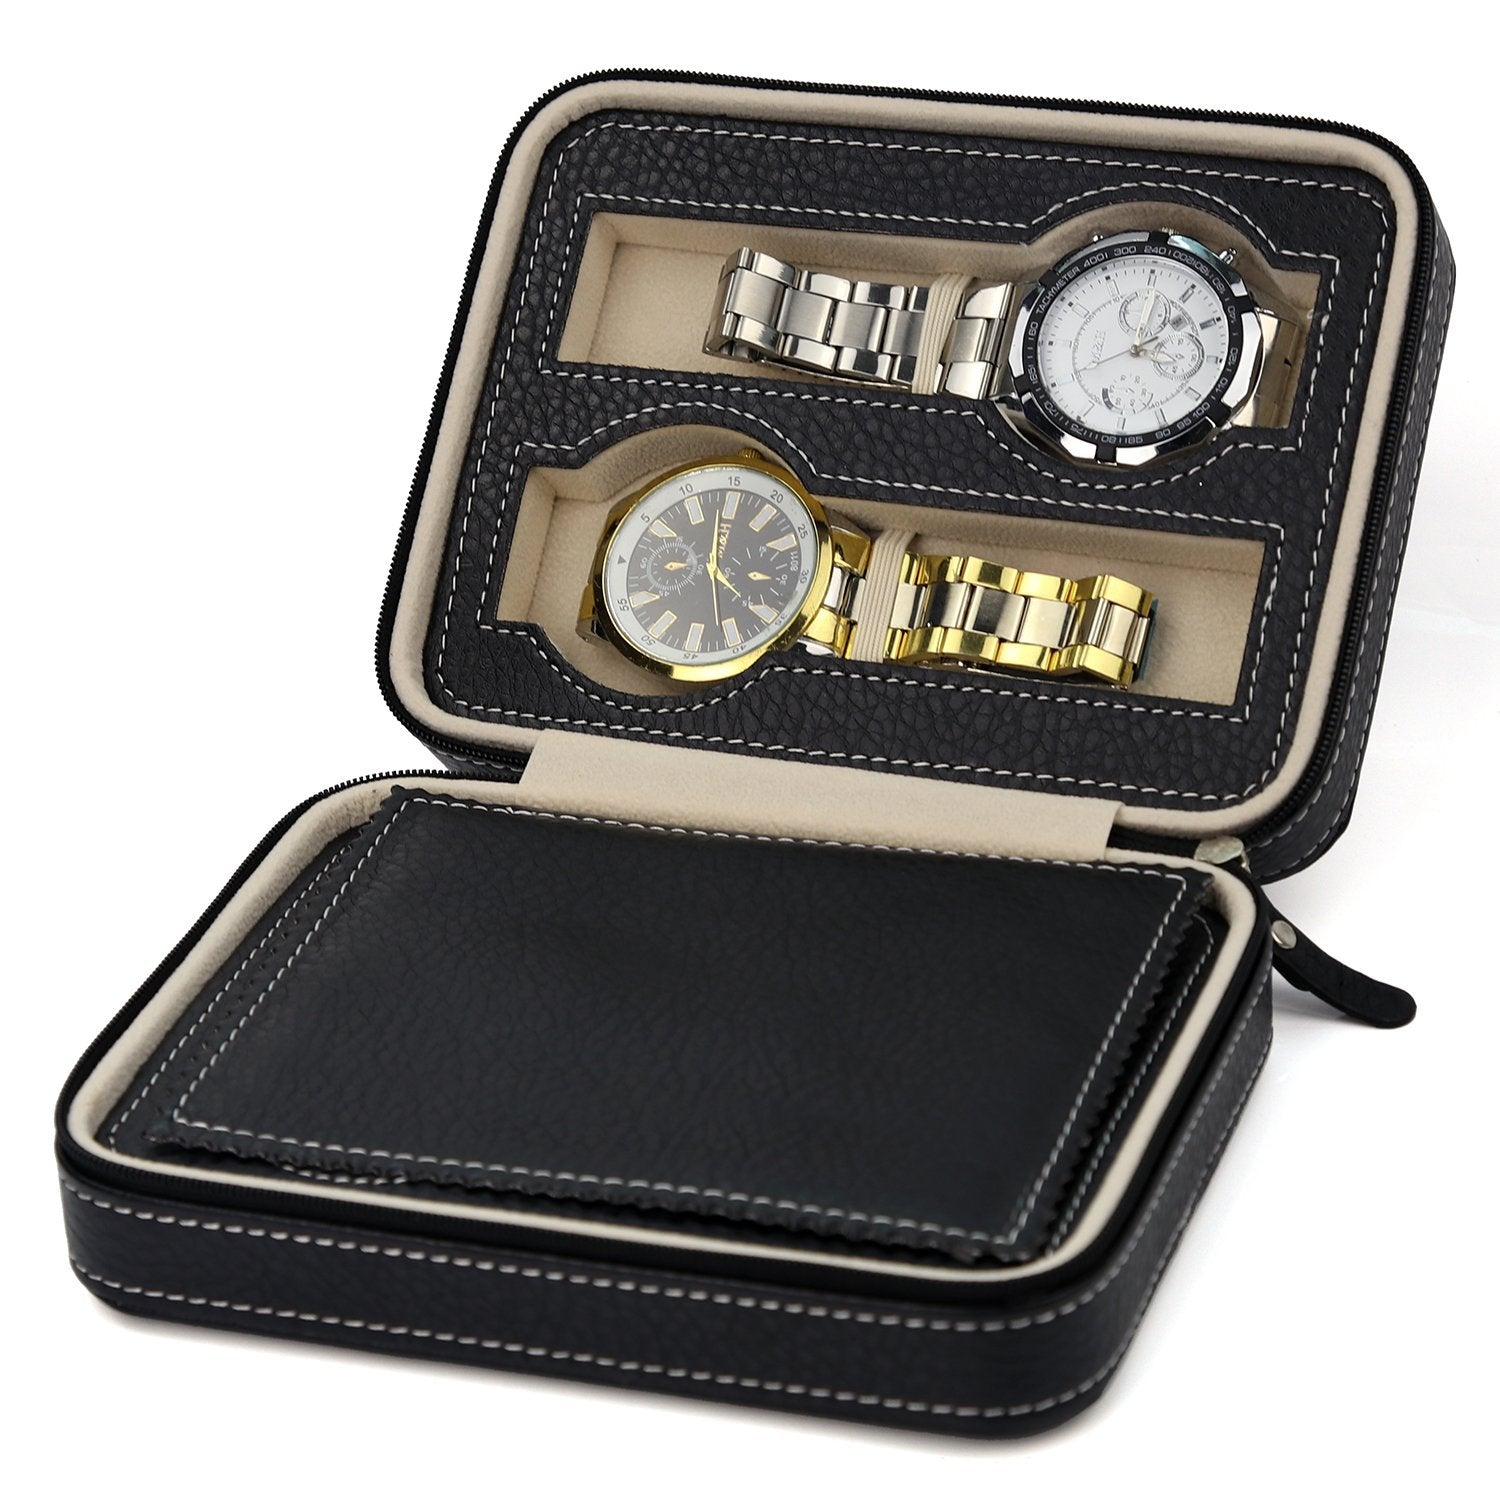 Triton Luxury PU Leather Watch Organizer Box | Monthly Madness